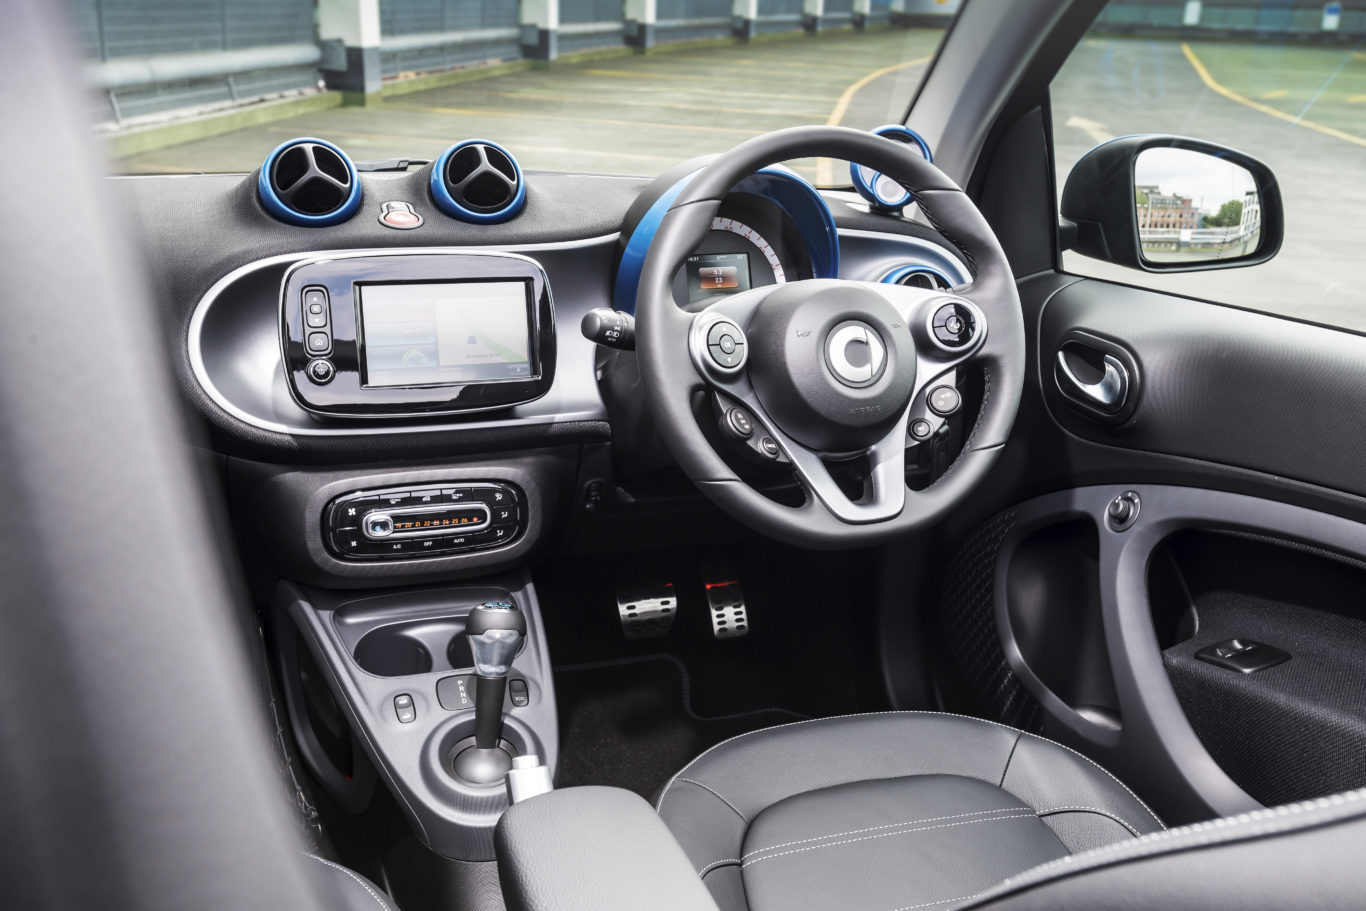 The cabin of the compact Smart is surprisingly spacious